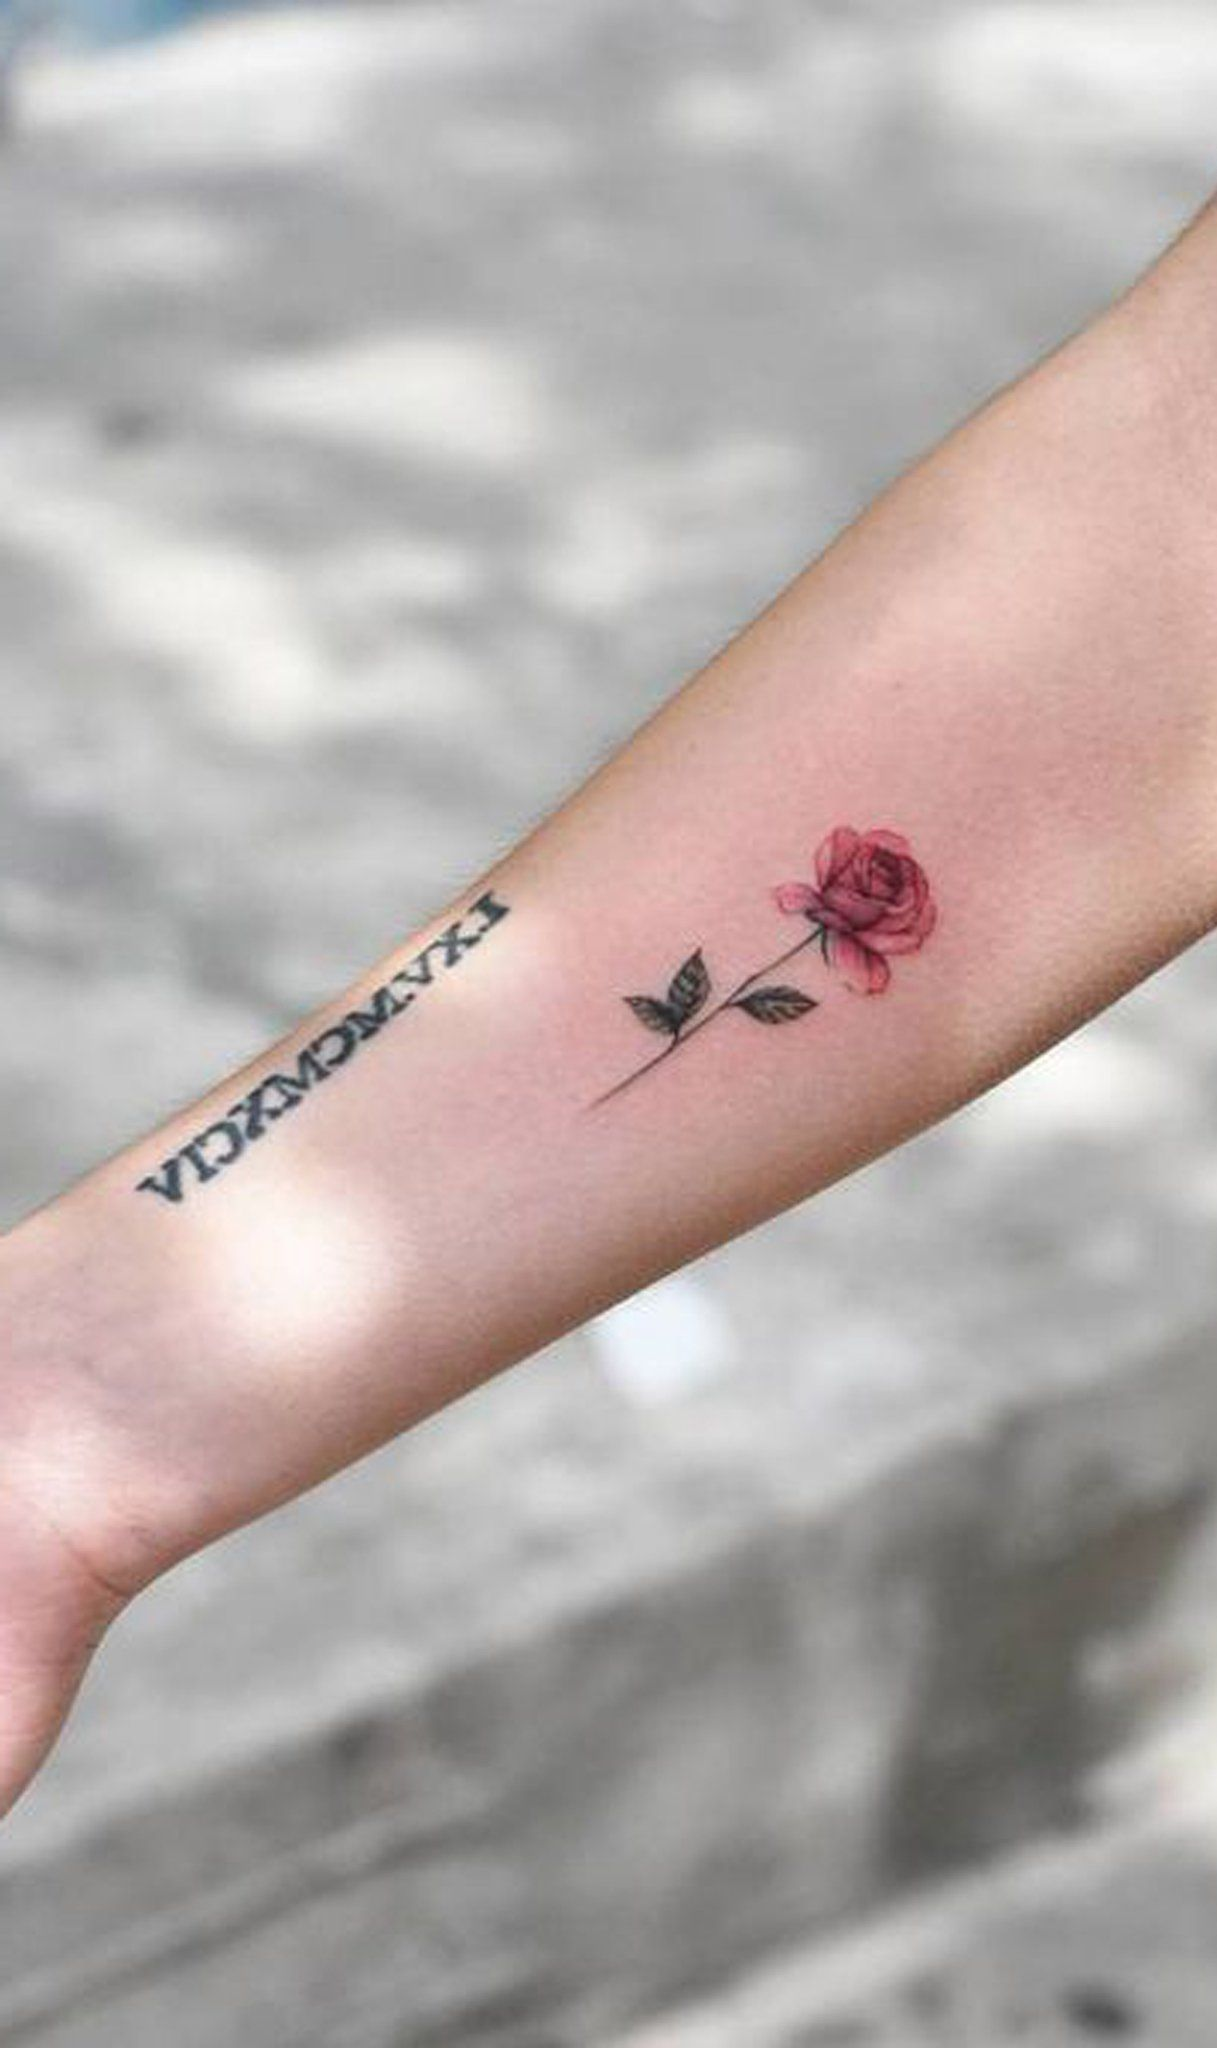 Cute Watercolor Small Rose Forearm Tattoo Ideas For Women Www Mybodiart Com Tattoos Tattooideassma Tattoos For Women Small Flower Tattoos Small Rose Tattoo